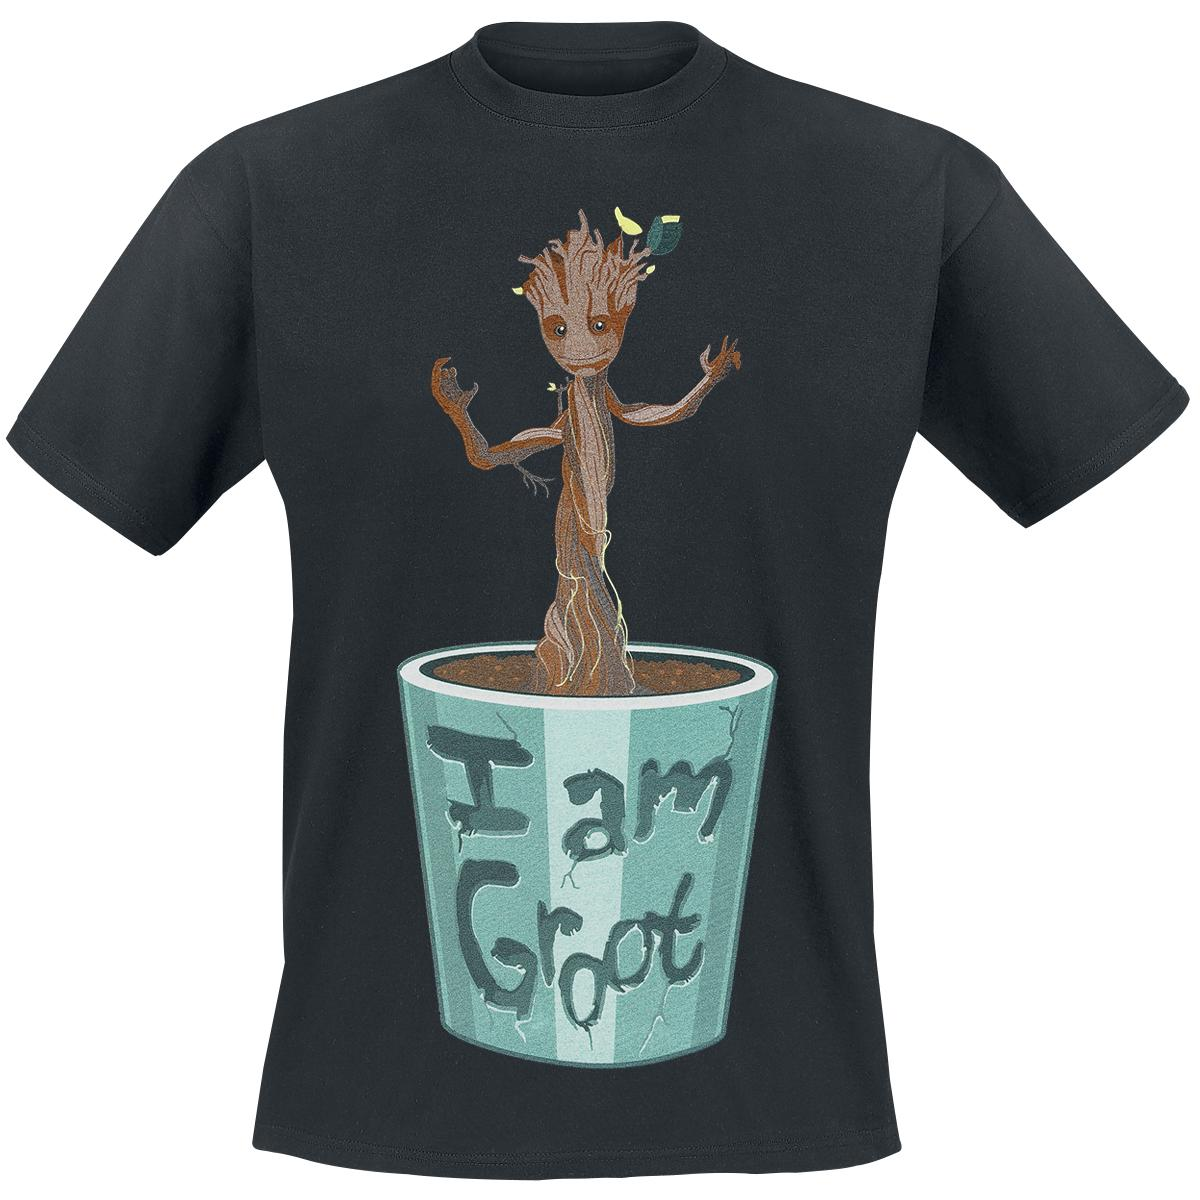 I Am Groot T Shirt I Am Groot T-shirt Des...